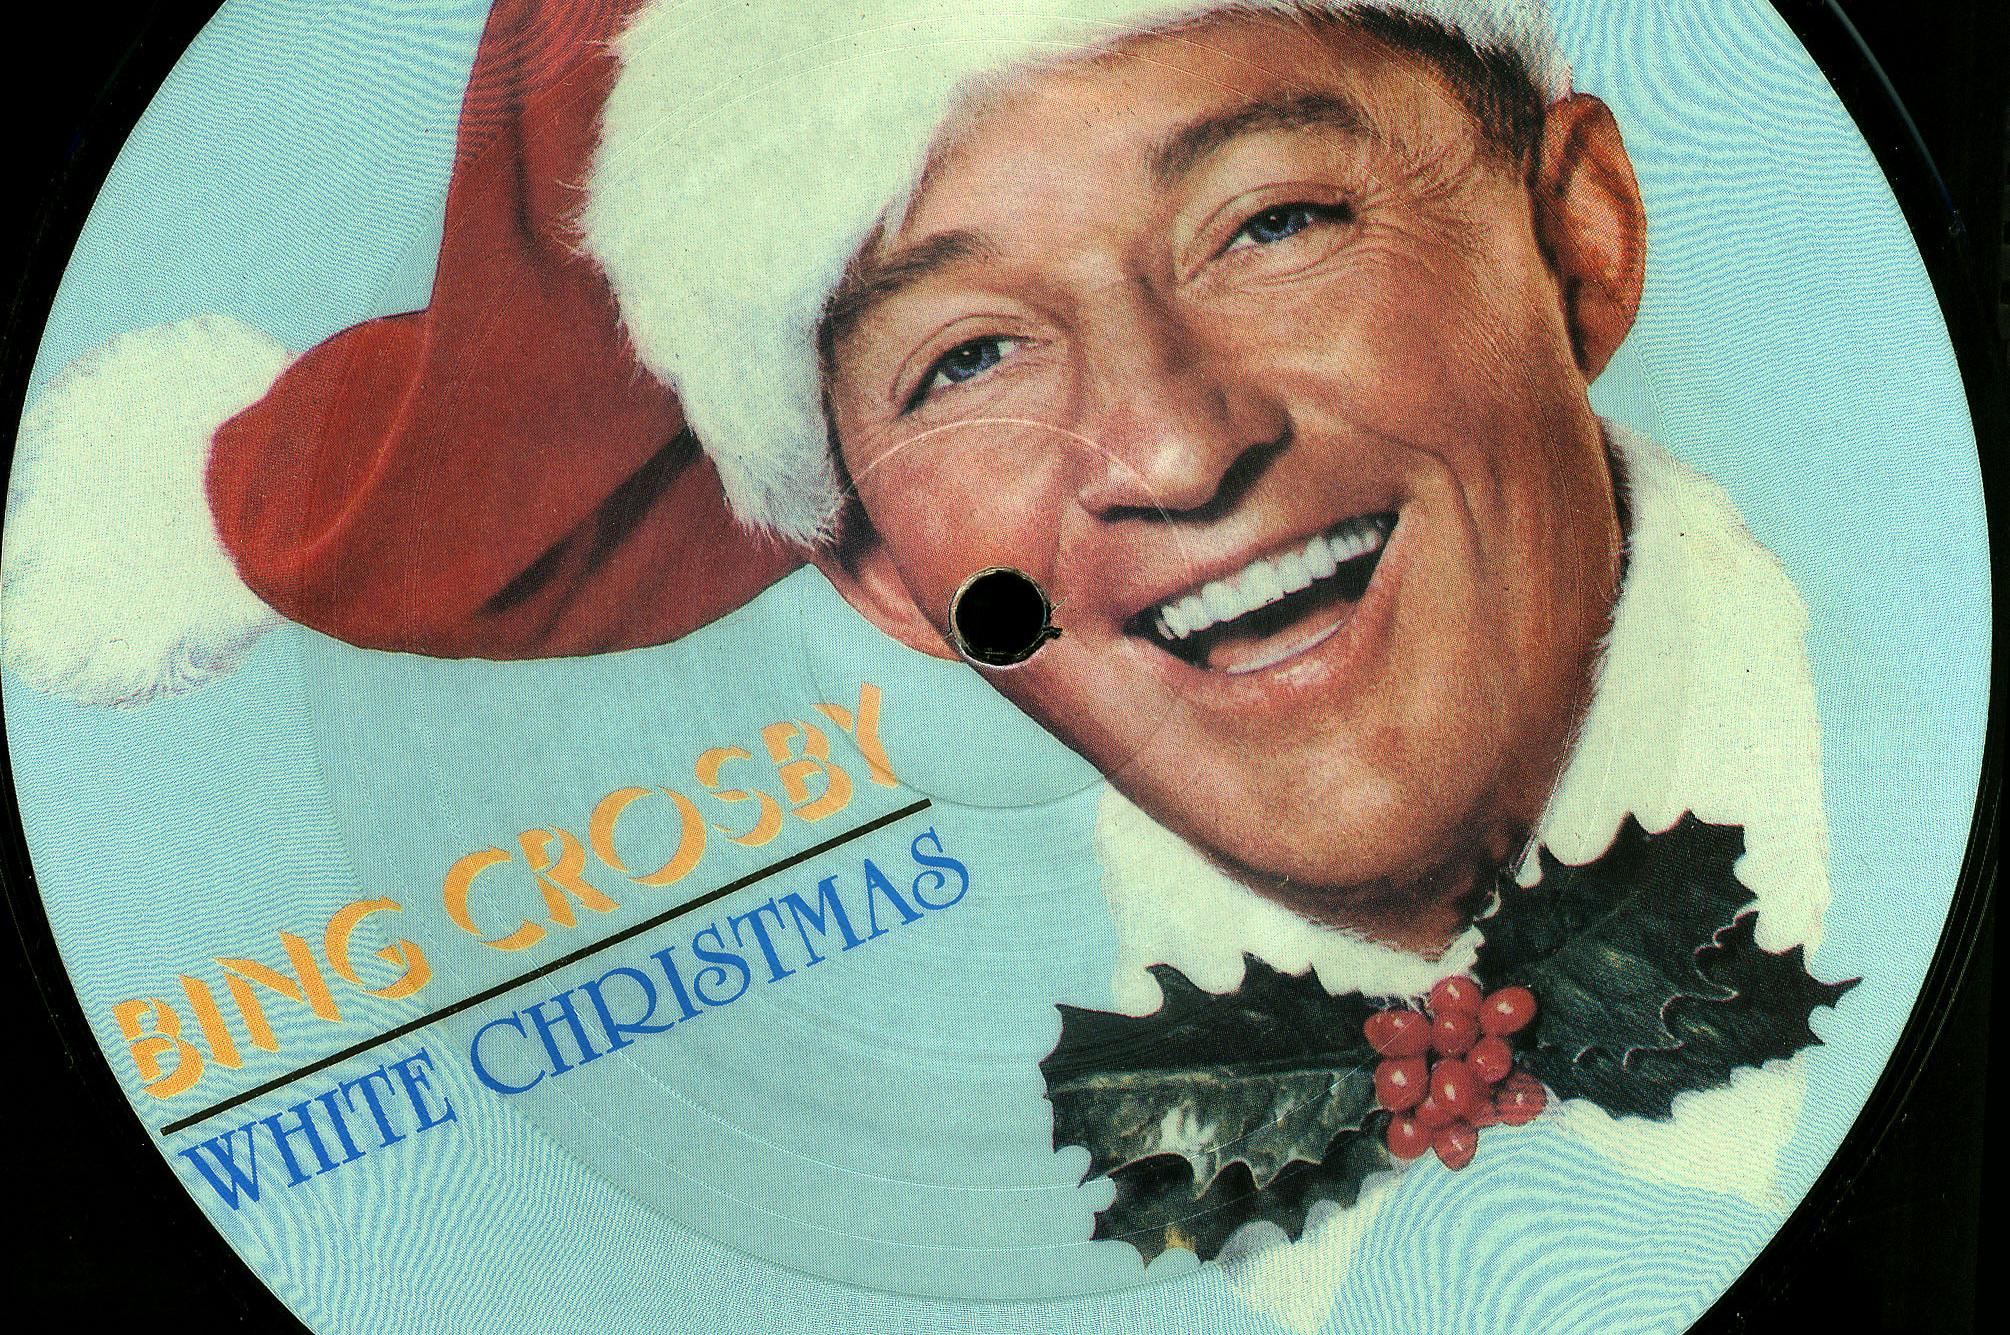 Bing Crosby Christmas Album.7 Of The Best White Christmas Covers The Spokesman Review